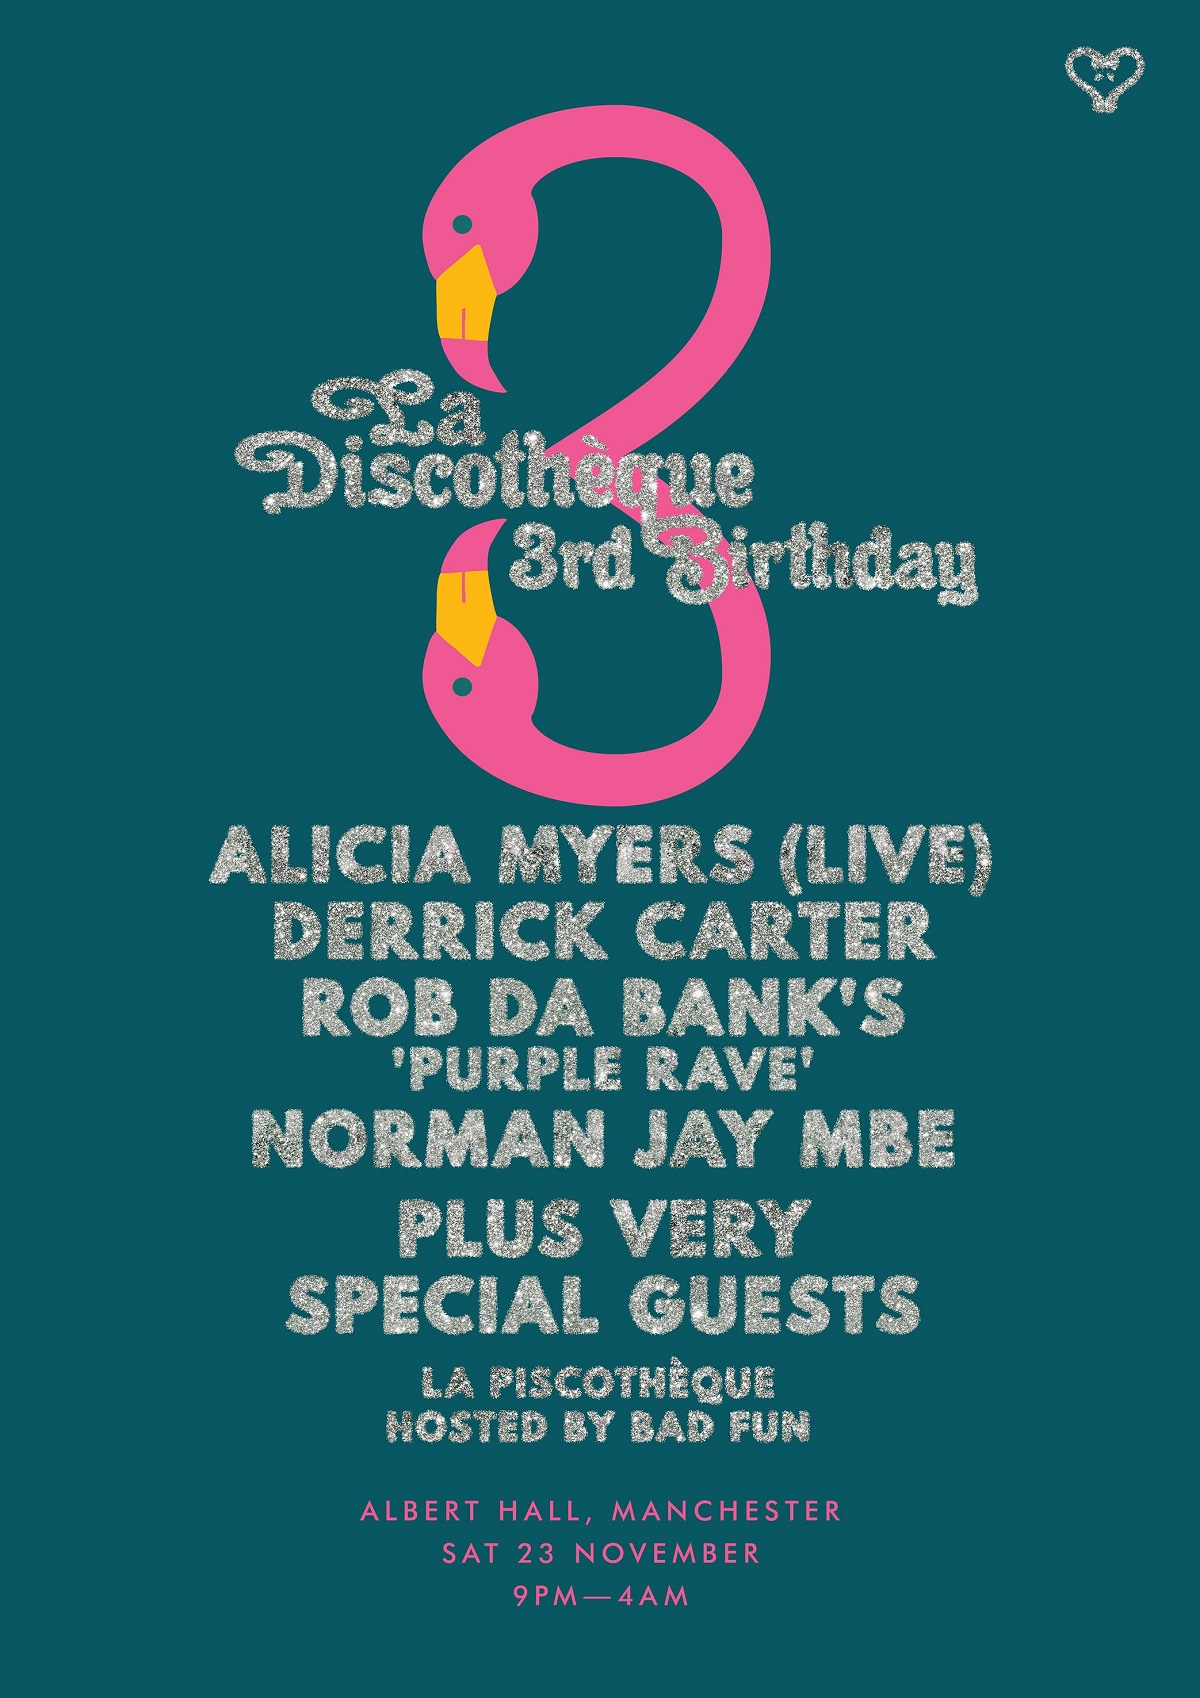 Image result for la discotheque manchester 3rd birthday